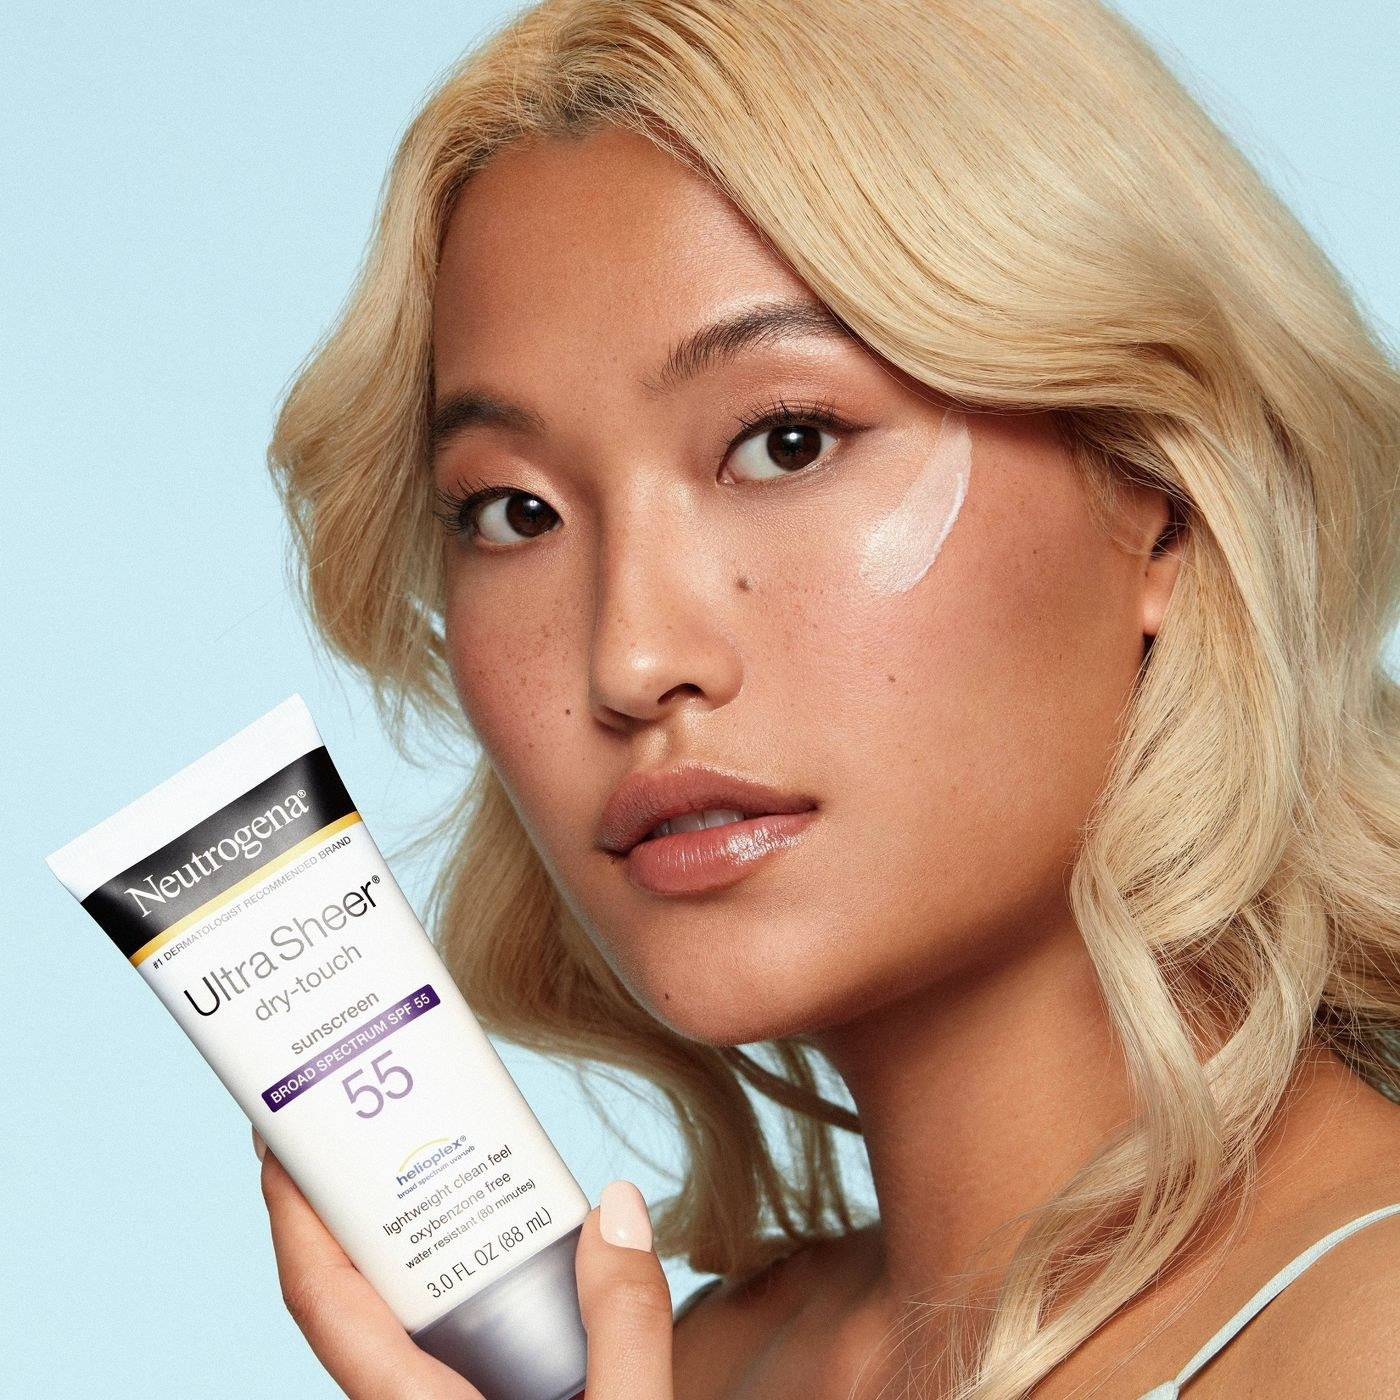 model uses white, black and purple bottle of sunscreen